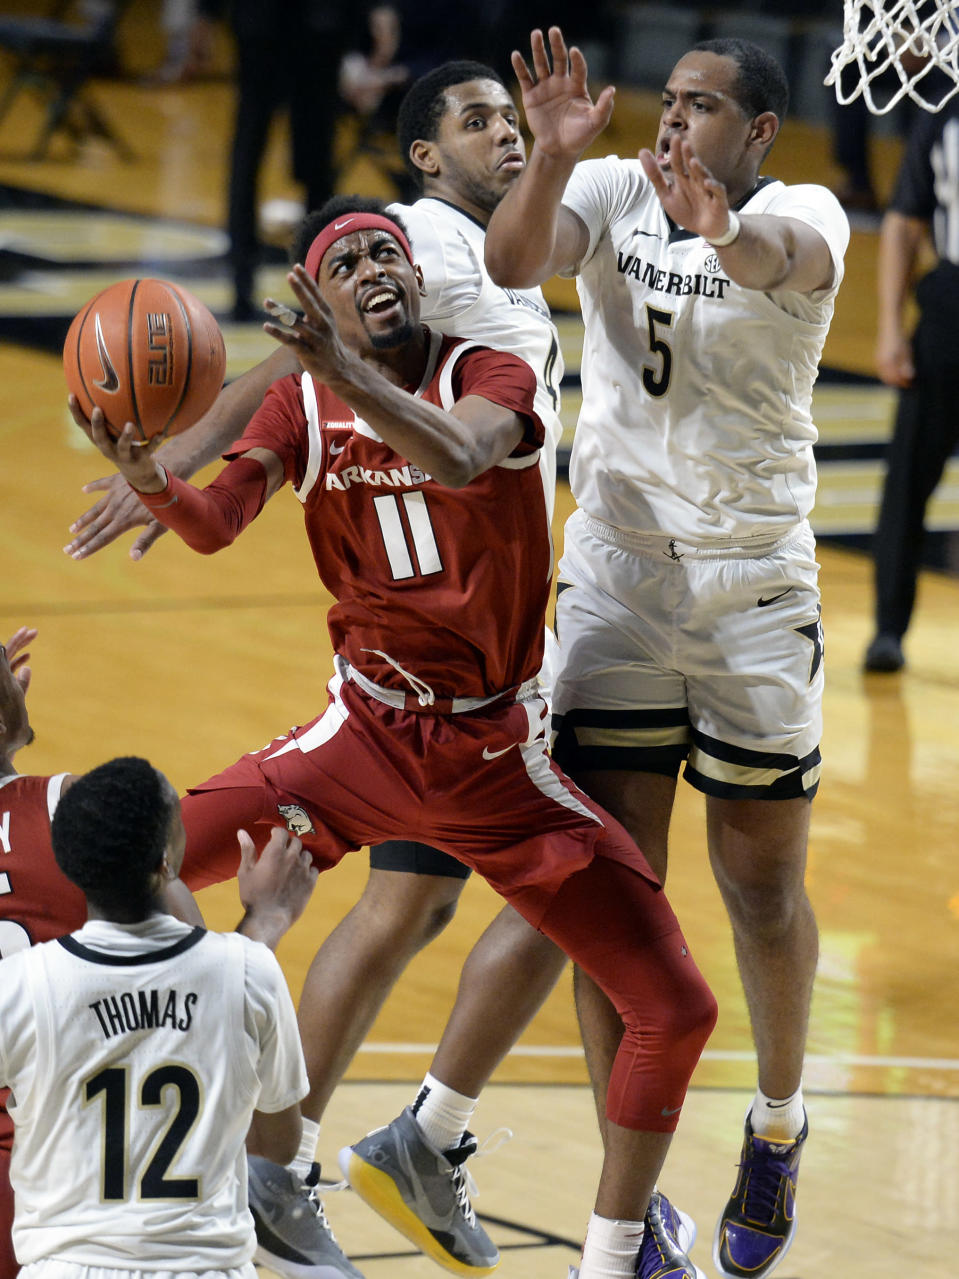 Arkansas guard Jalen Tate (11) shoots against Vanderbilt guard D.J. Harvey (5) during the second half of an NCAA college basketball game against Vanderbilt Saturday, Jan. 23, 2021, in Nashville, Tenn. Arkansas won 92-71. (AP Photo/Mark Zaleski)